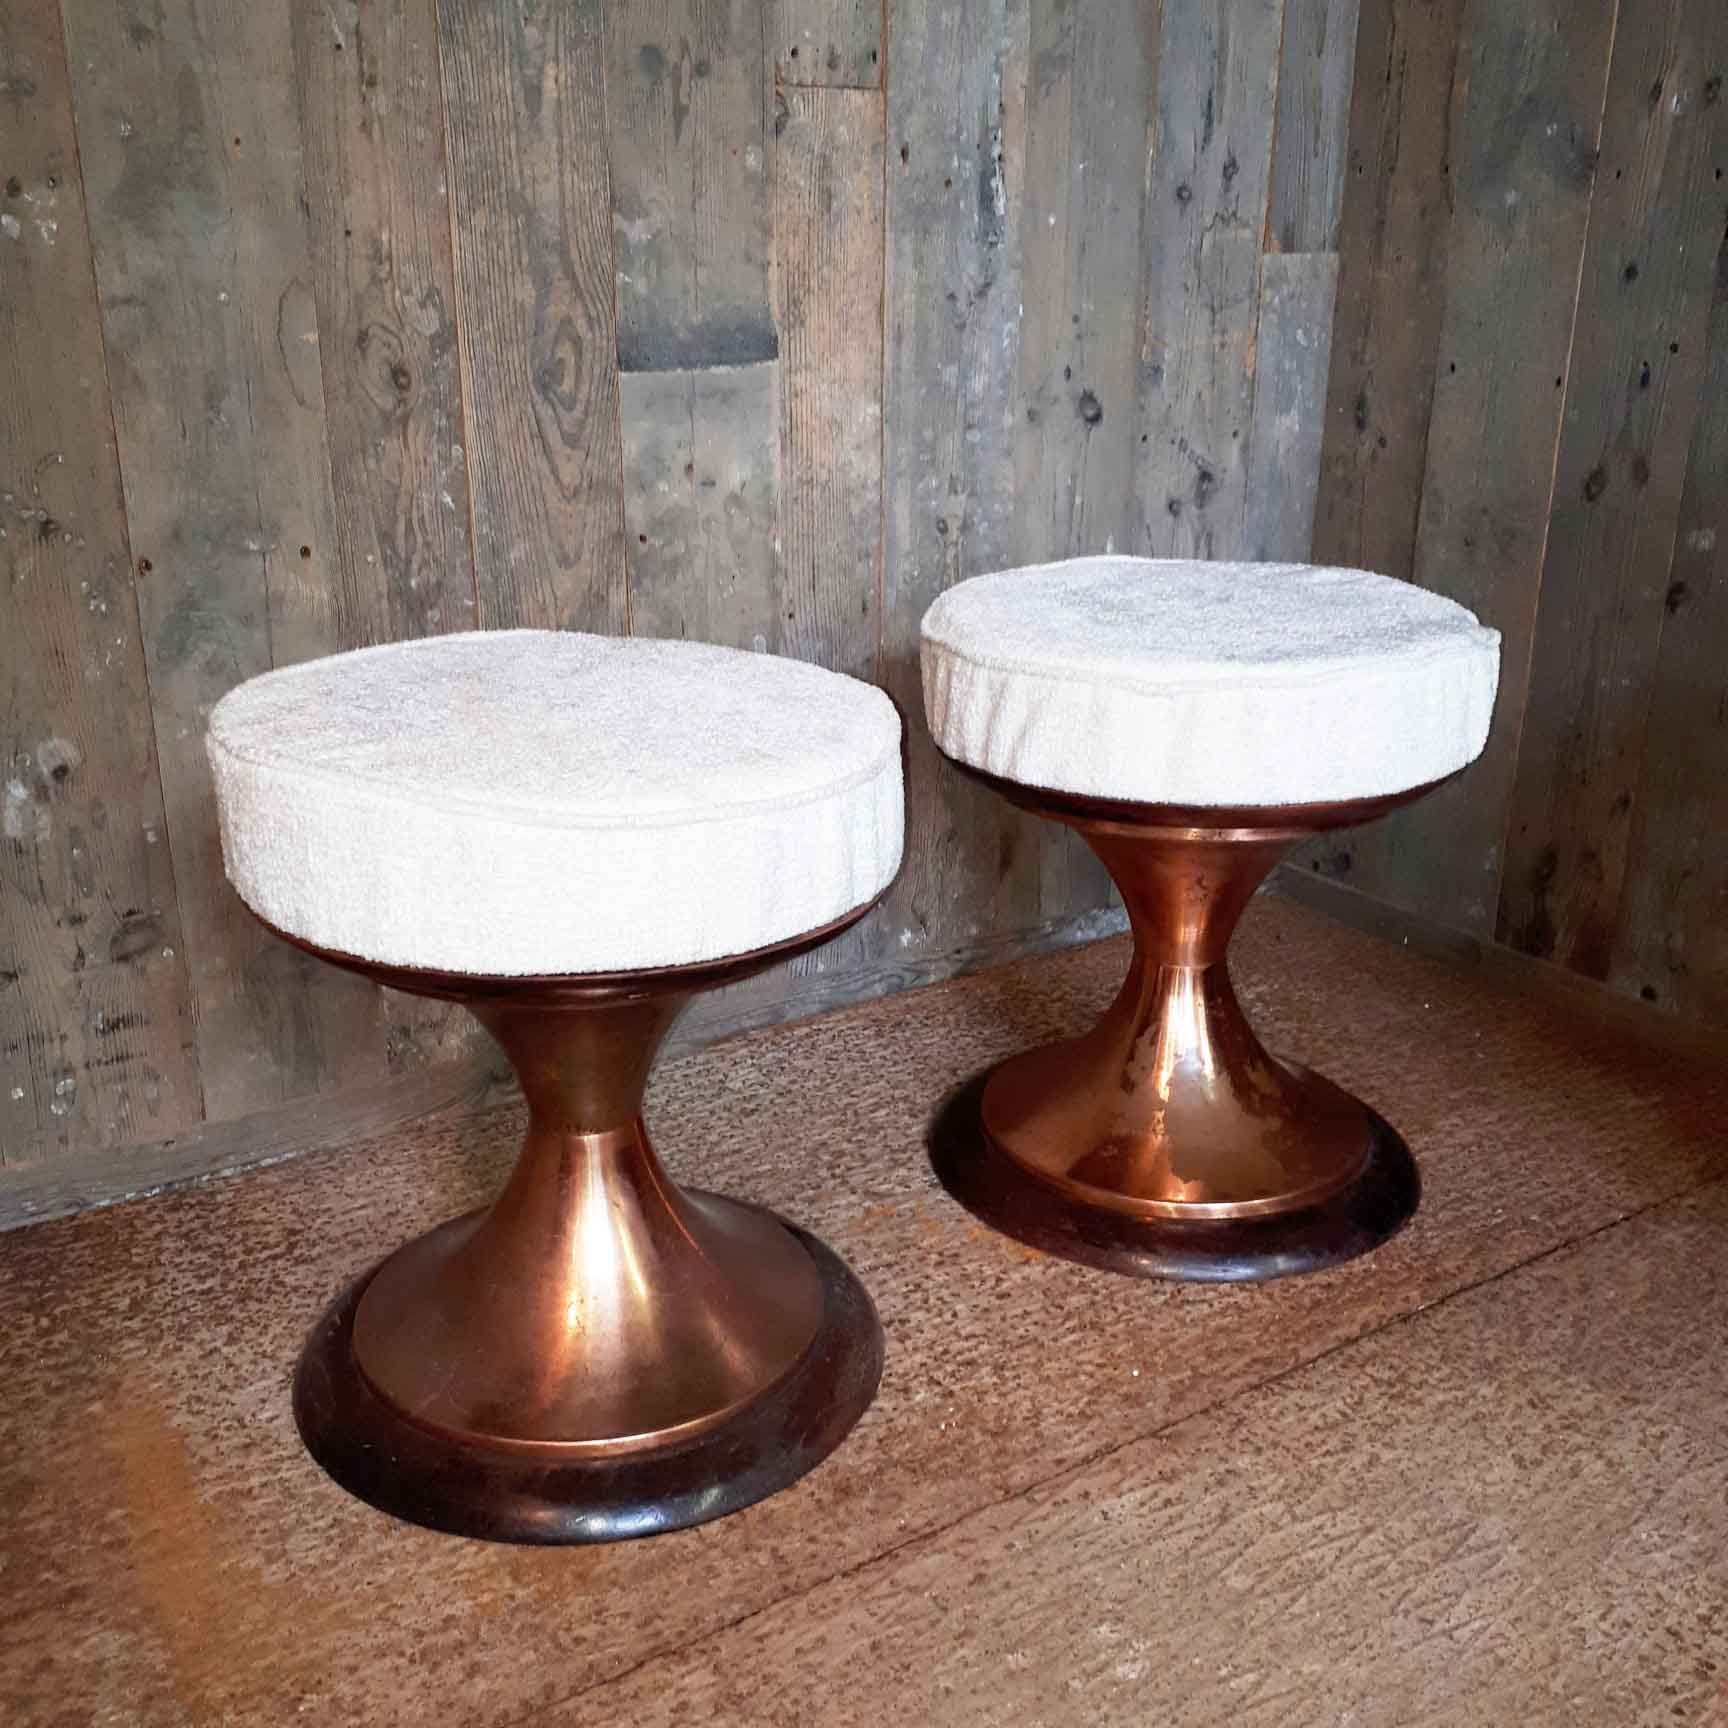 Pair of vintage stools with bronze-colored feet